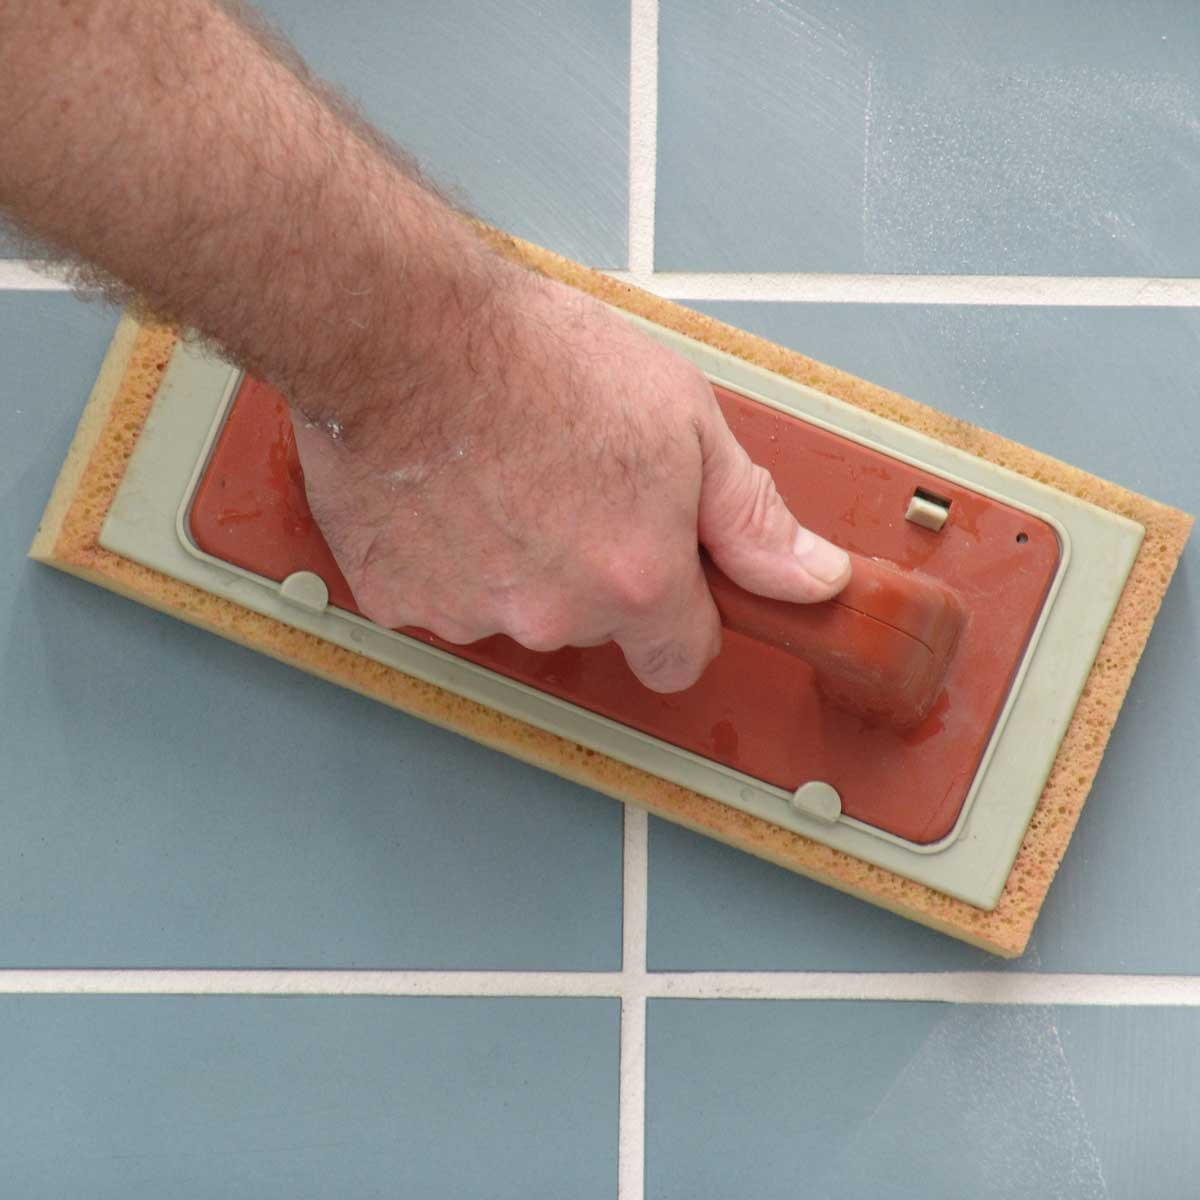 Raimondi Smart sponge clean tile